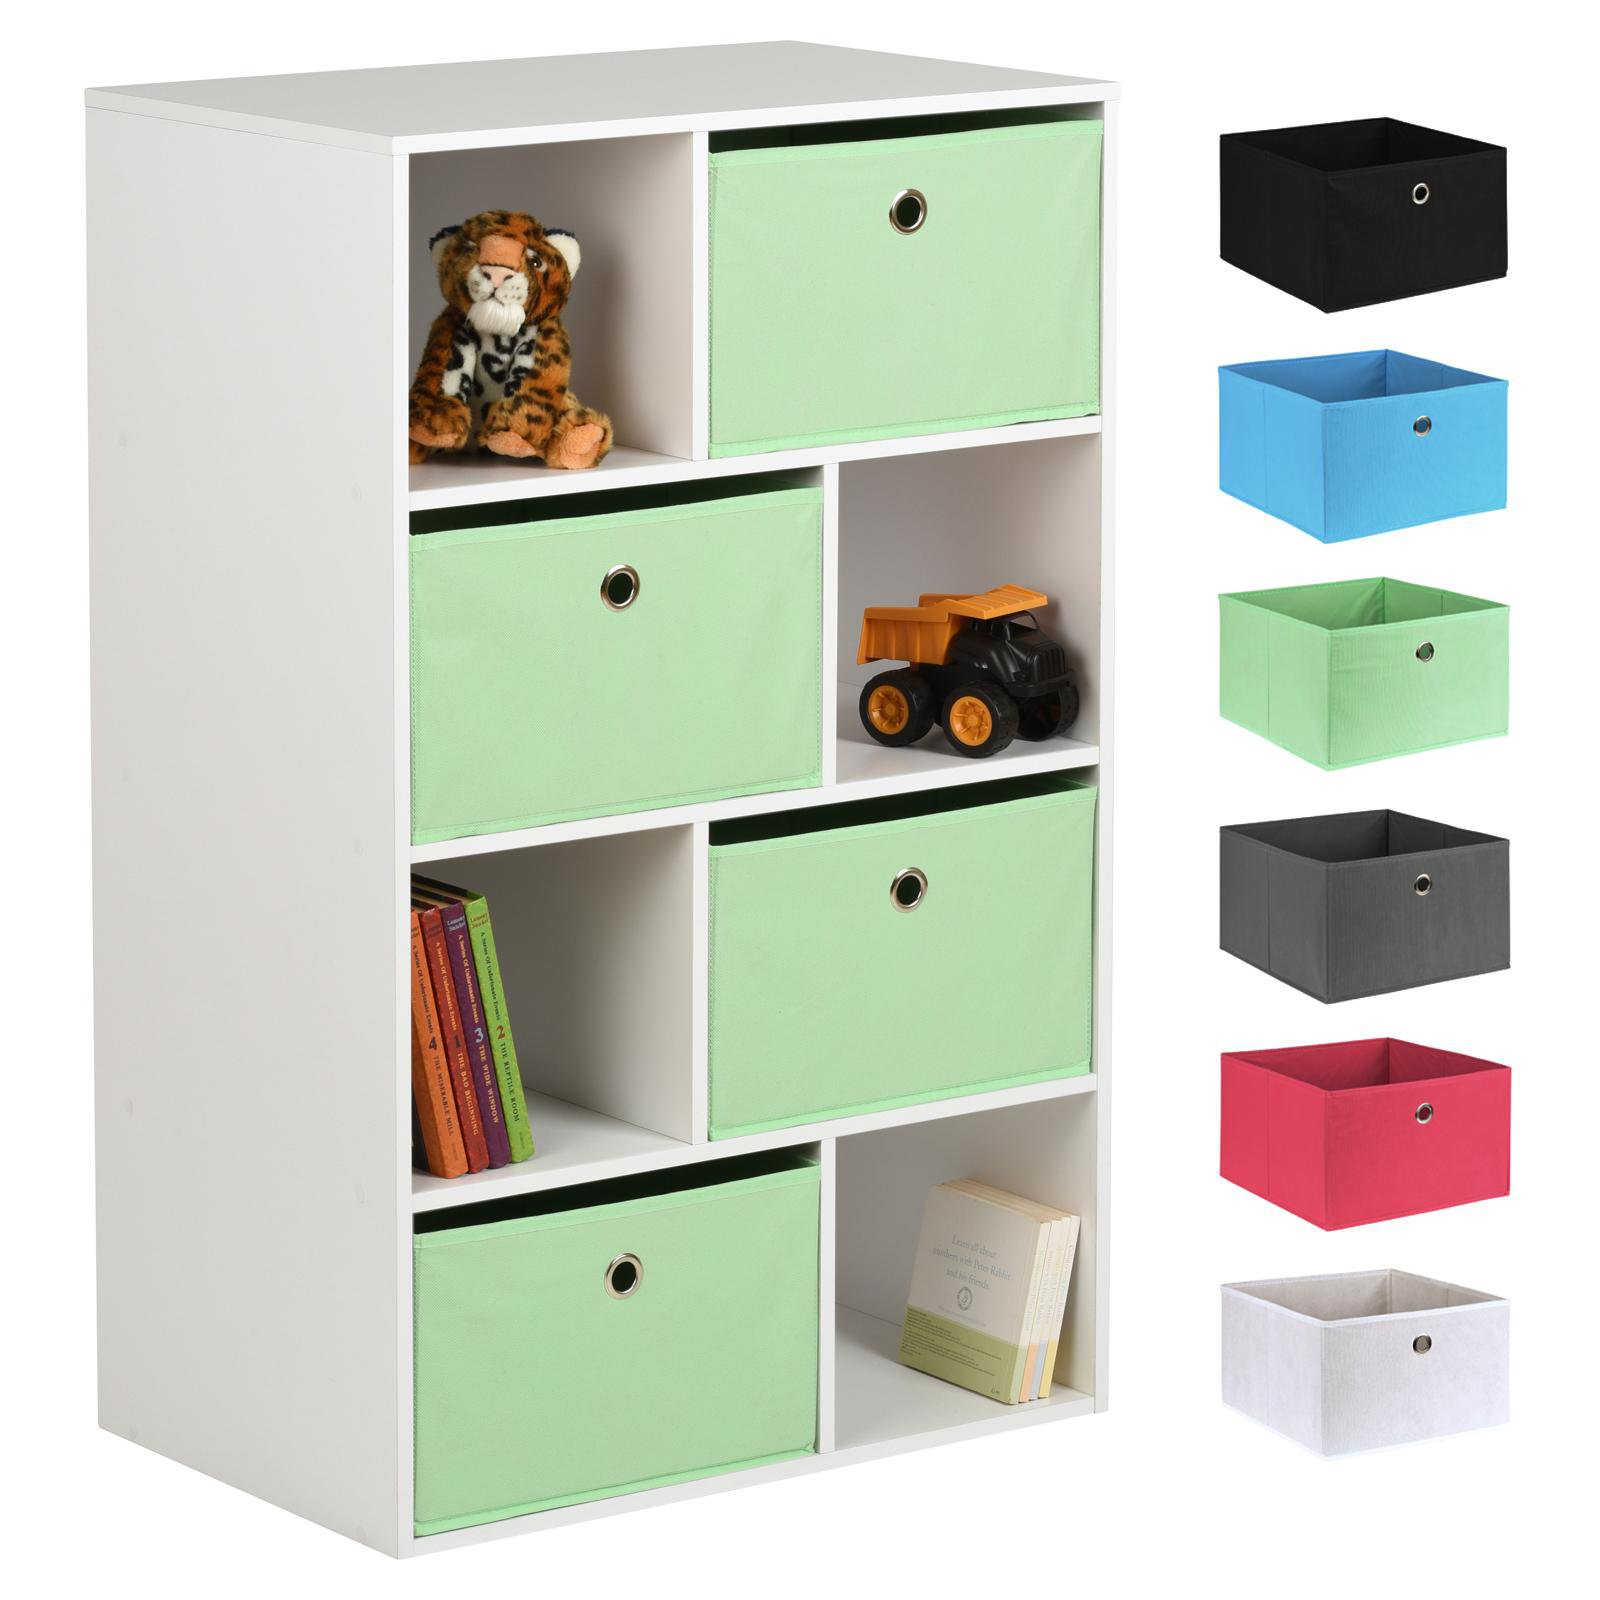 image-Hartleys White 8 Cube Kids Storage Unit & 4 Easy Grasp Box Drawers - Mint